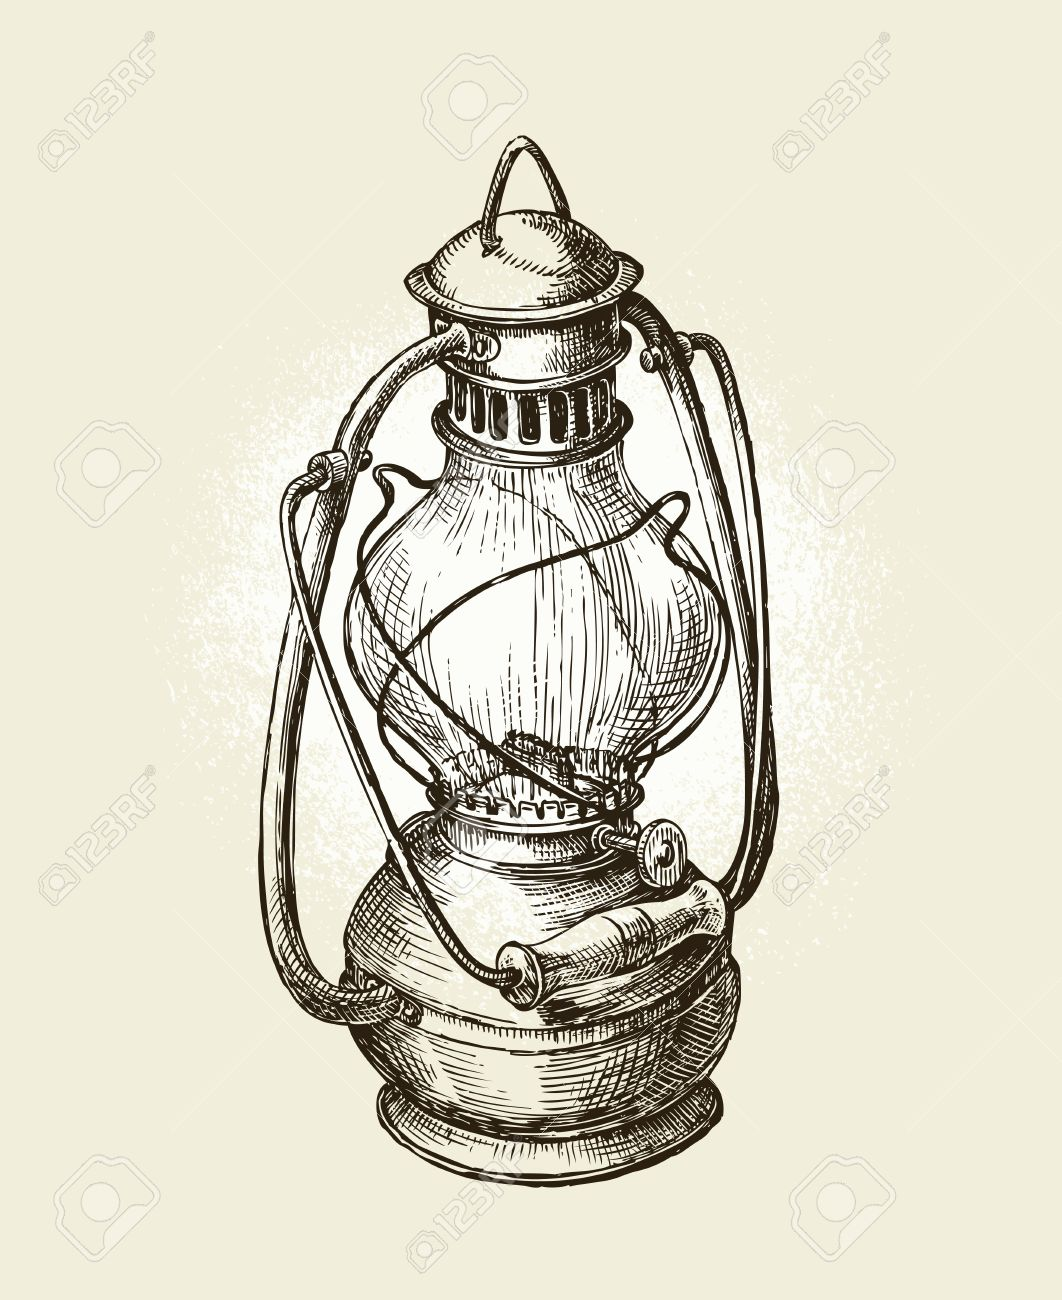 Hand Drawn Vintage Kerosene Lamp Sketch Oil Lamp Vector Illustration Royalty Free Cliparts Vectors And Stock Illustration Image 62204984